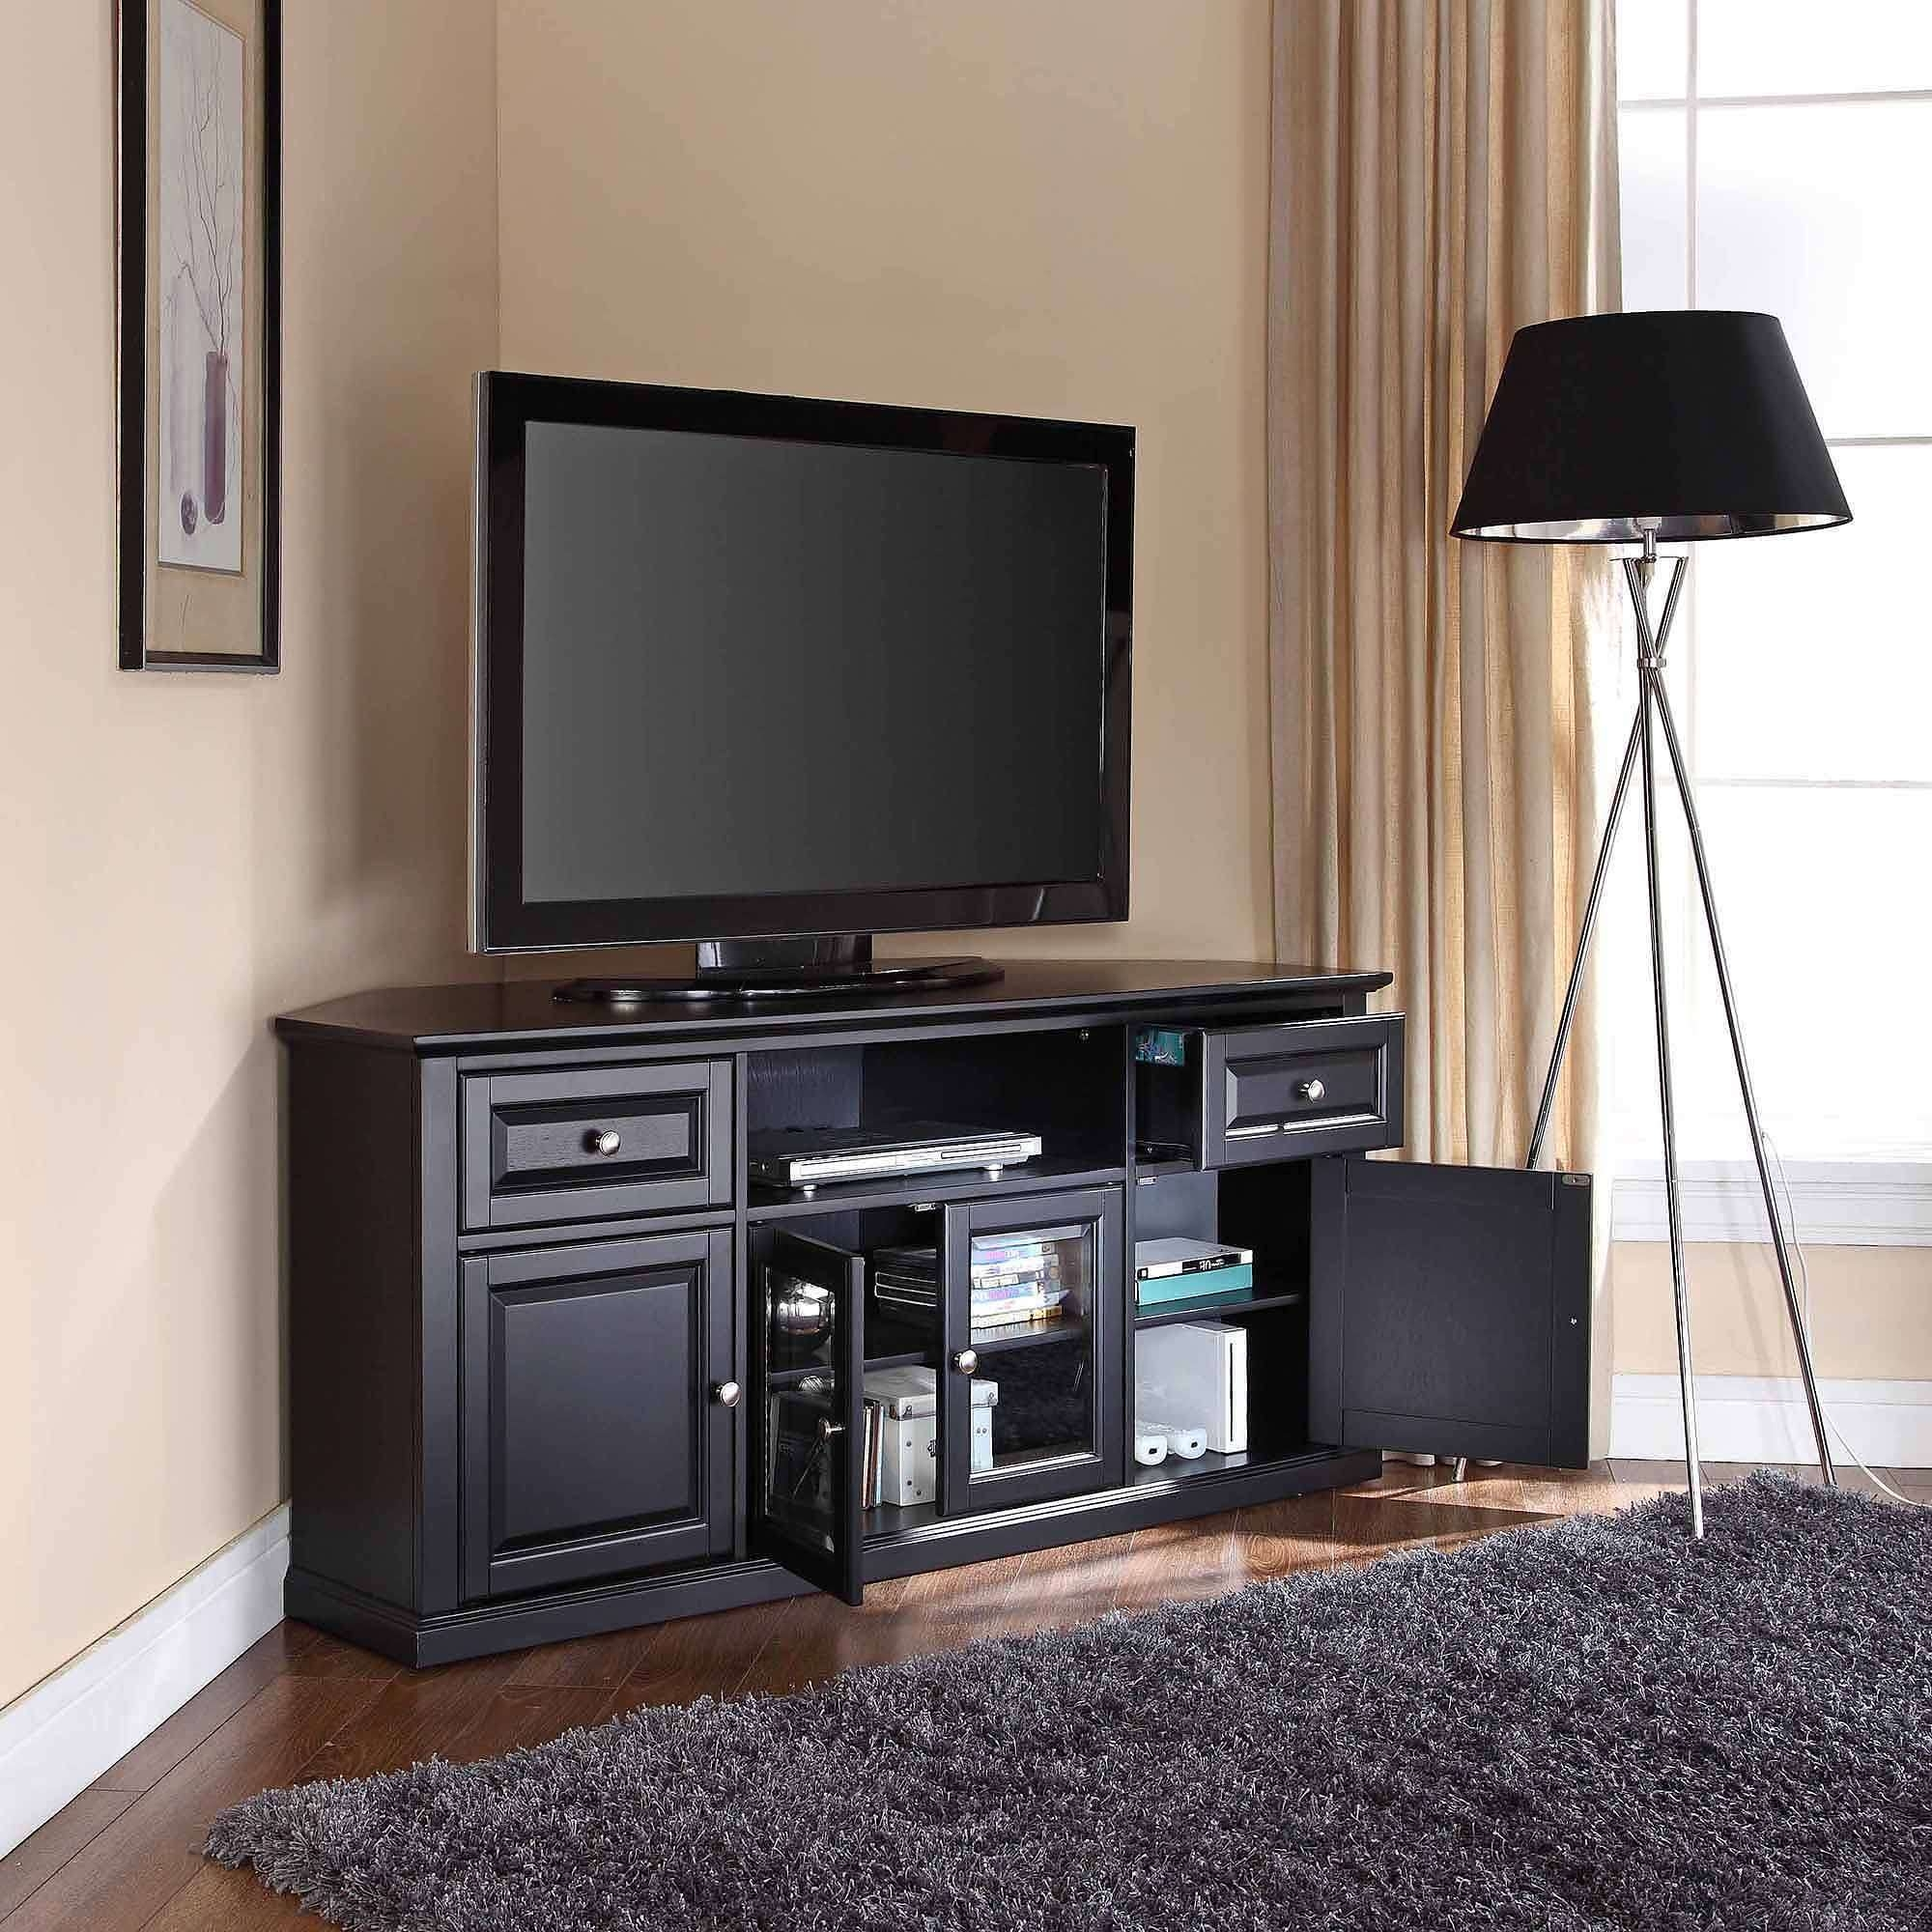 "Crosley Furniture Corner Tv Stand For Tvs Up To 60"" – Walmart With Regard To Low Corner Tv Cabinets (View 6 of 20)"